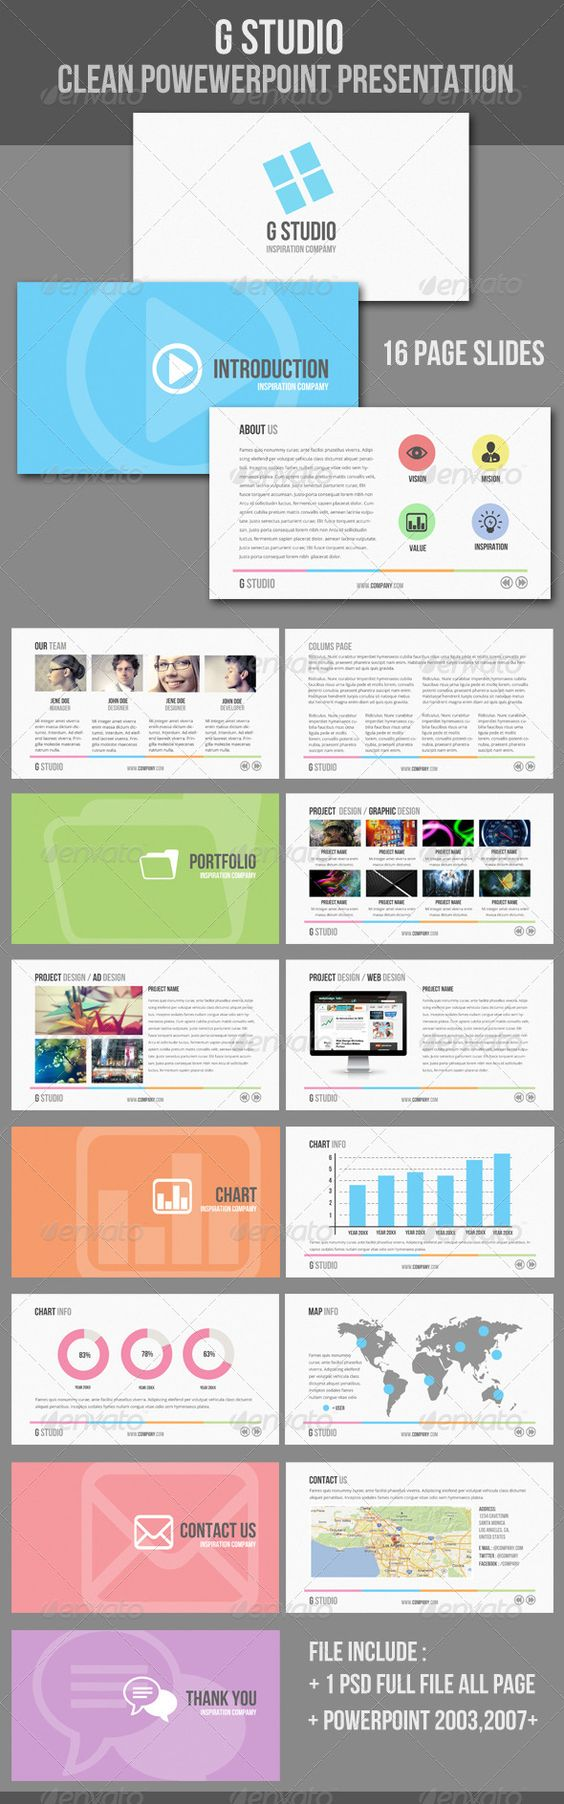 8 best ppt images on pinterest | presentation layout, layout, Modern powerpoint